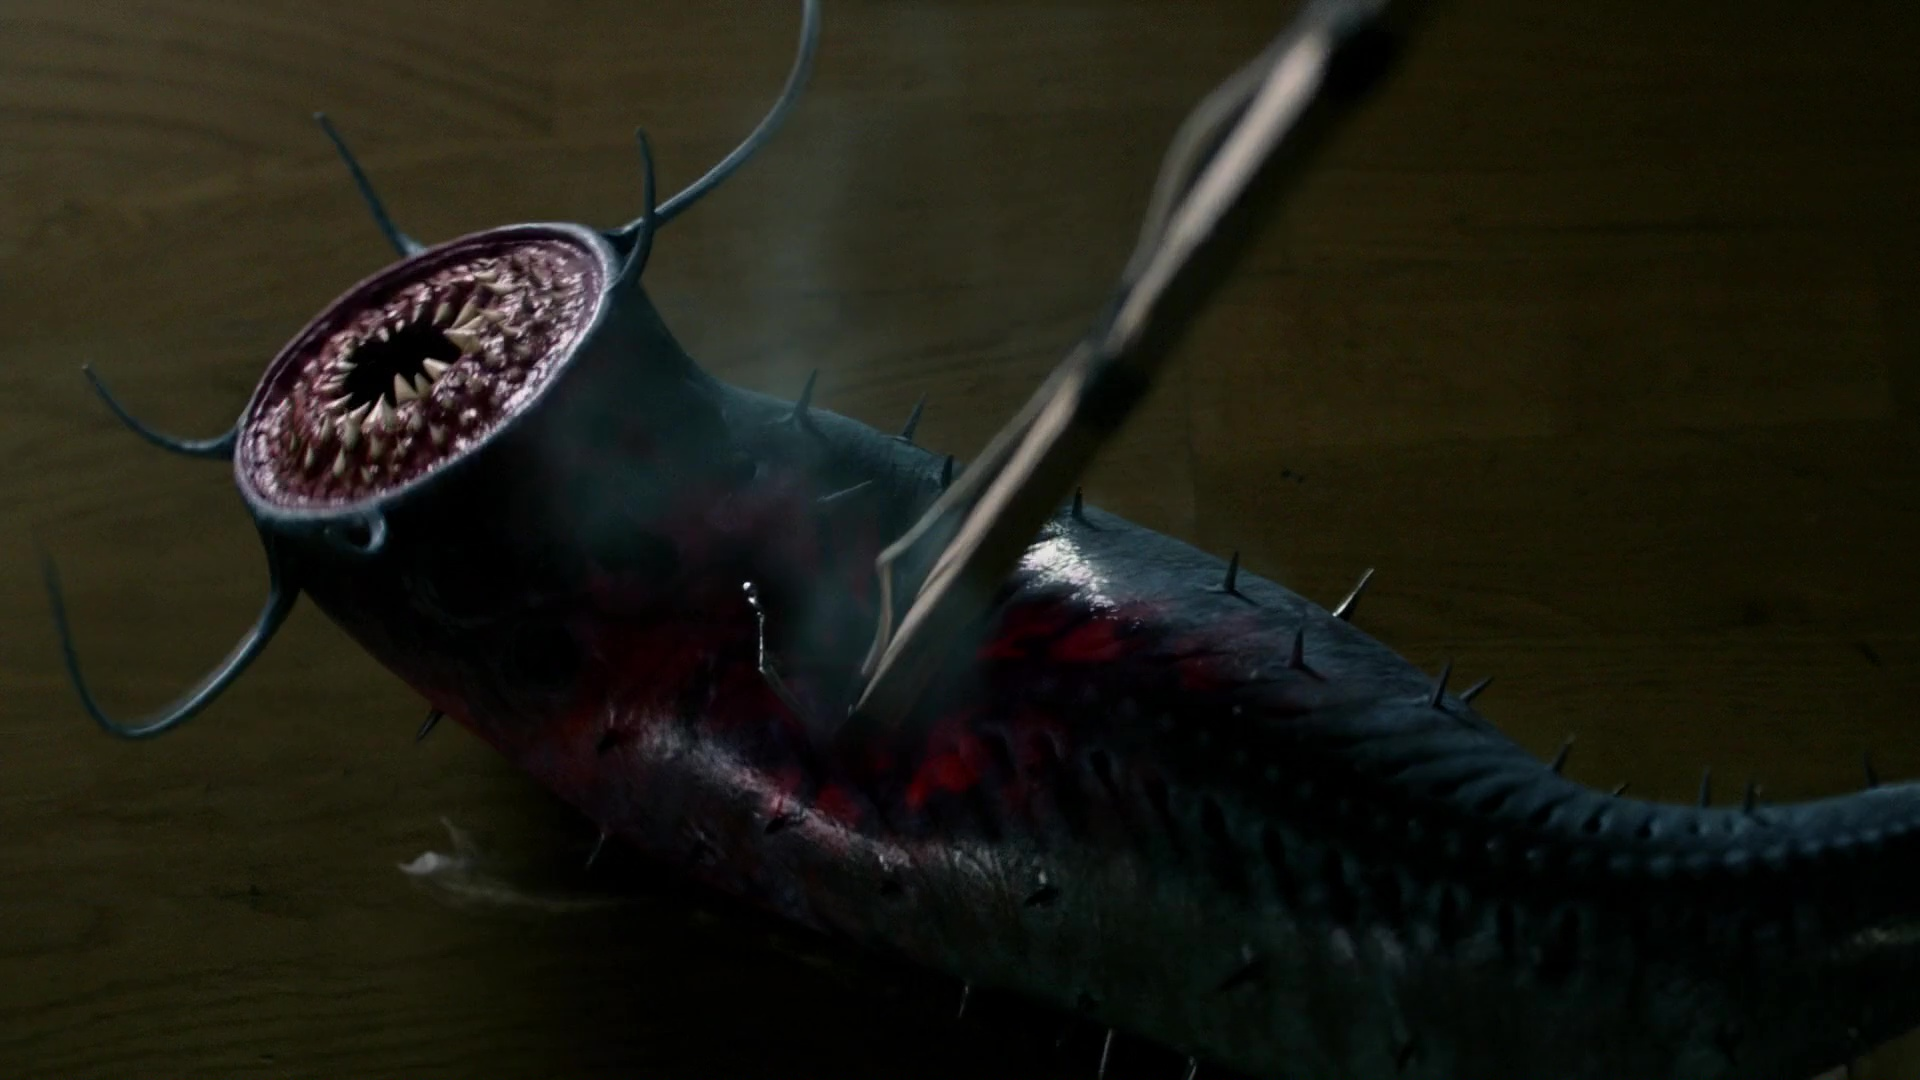 Lampreys The Magicians Wiki Fandom, What Is A Lamprey In The Magicians